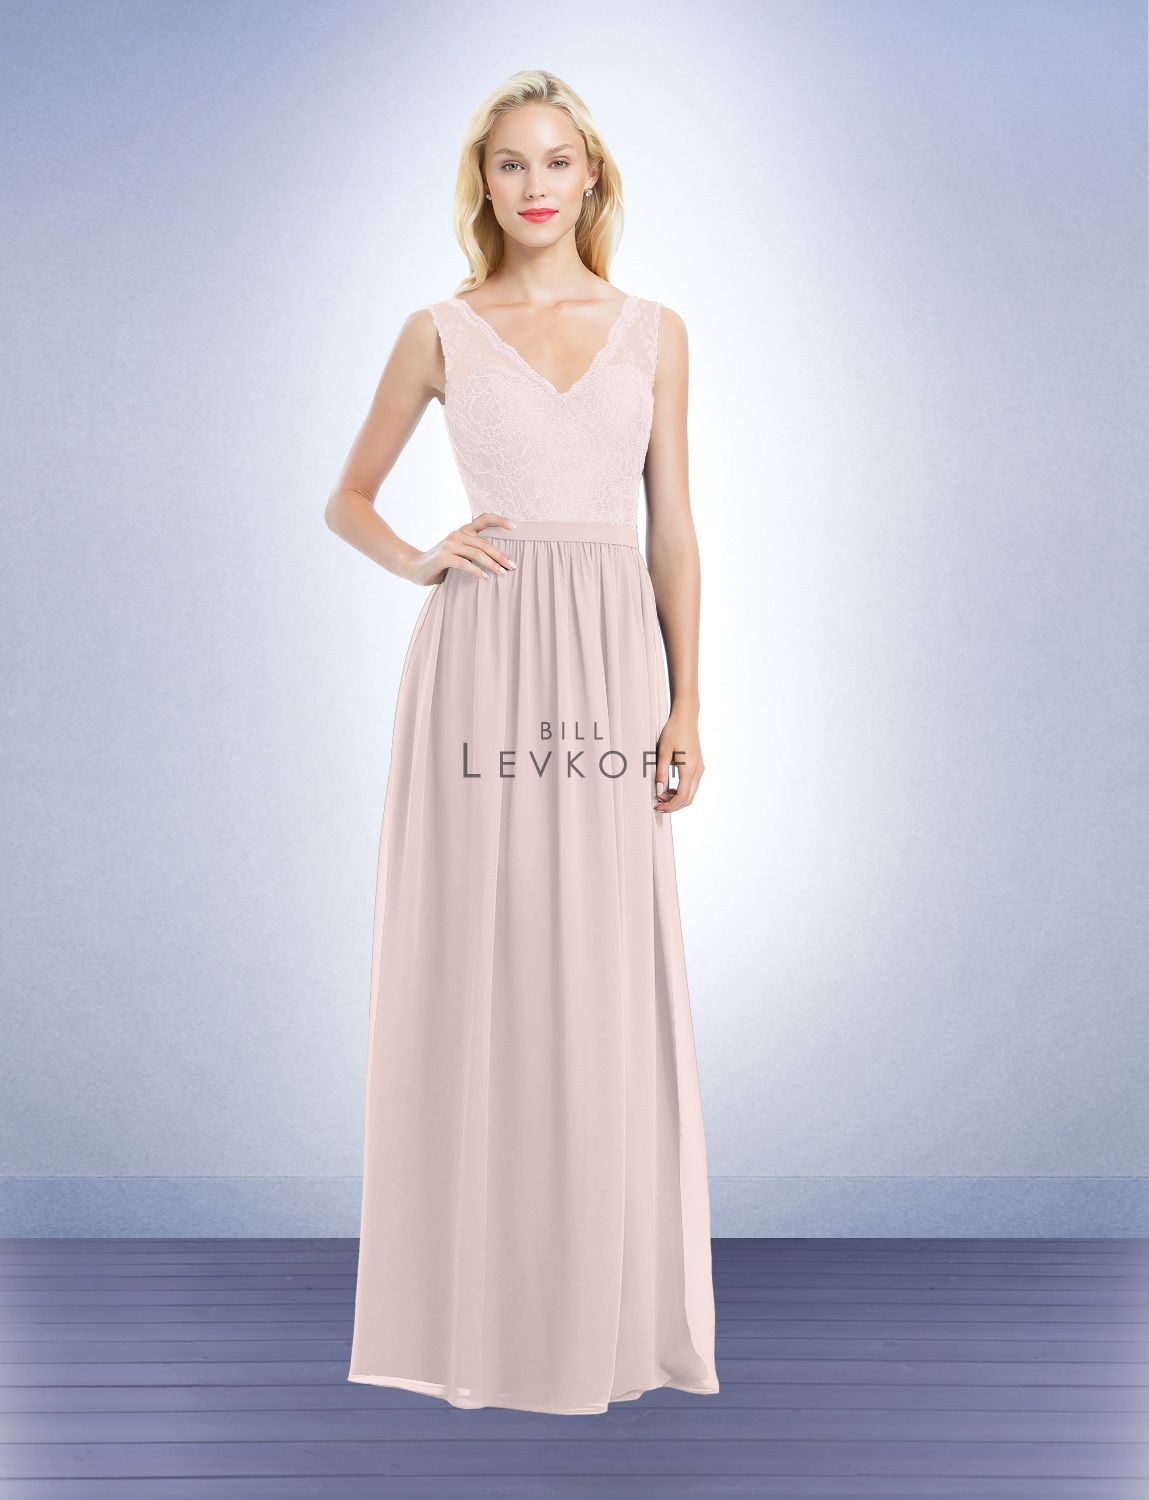 952689395f The top and bottom have an option to be different colors or shades  Bridesmaid Dress Style 1172 - Bridesmaid Dresses by Bill Levkoff